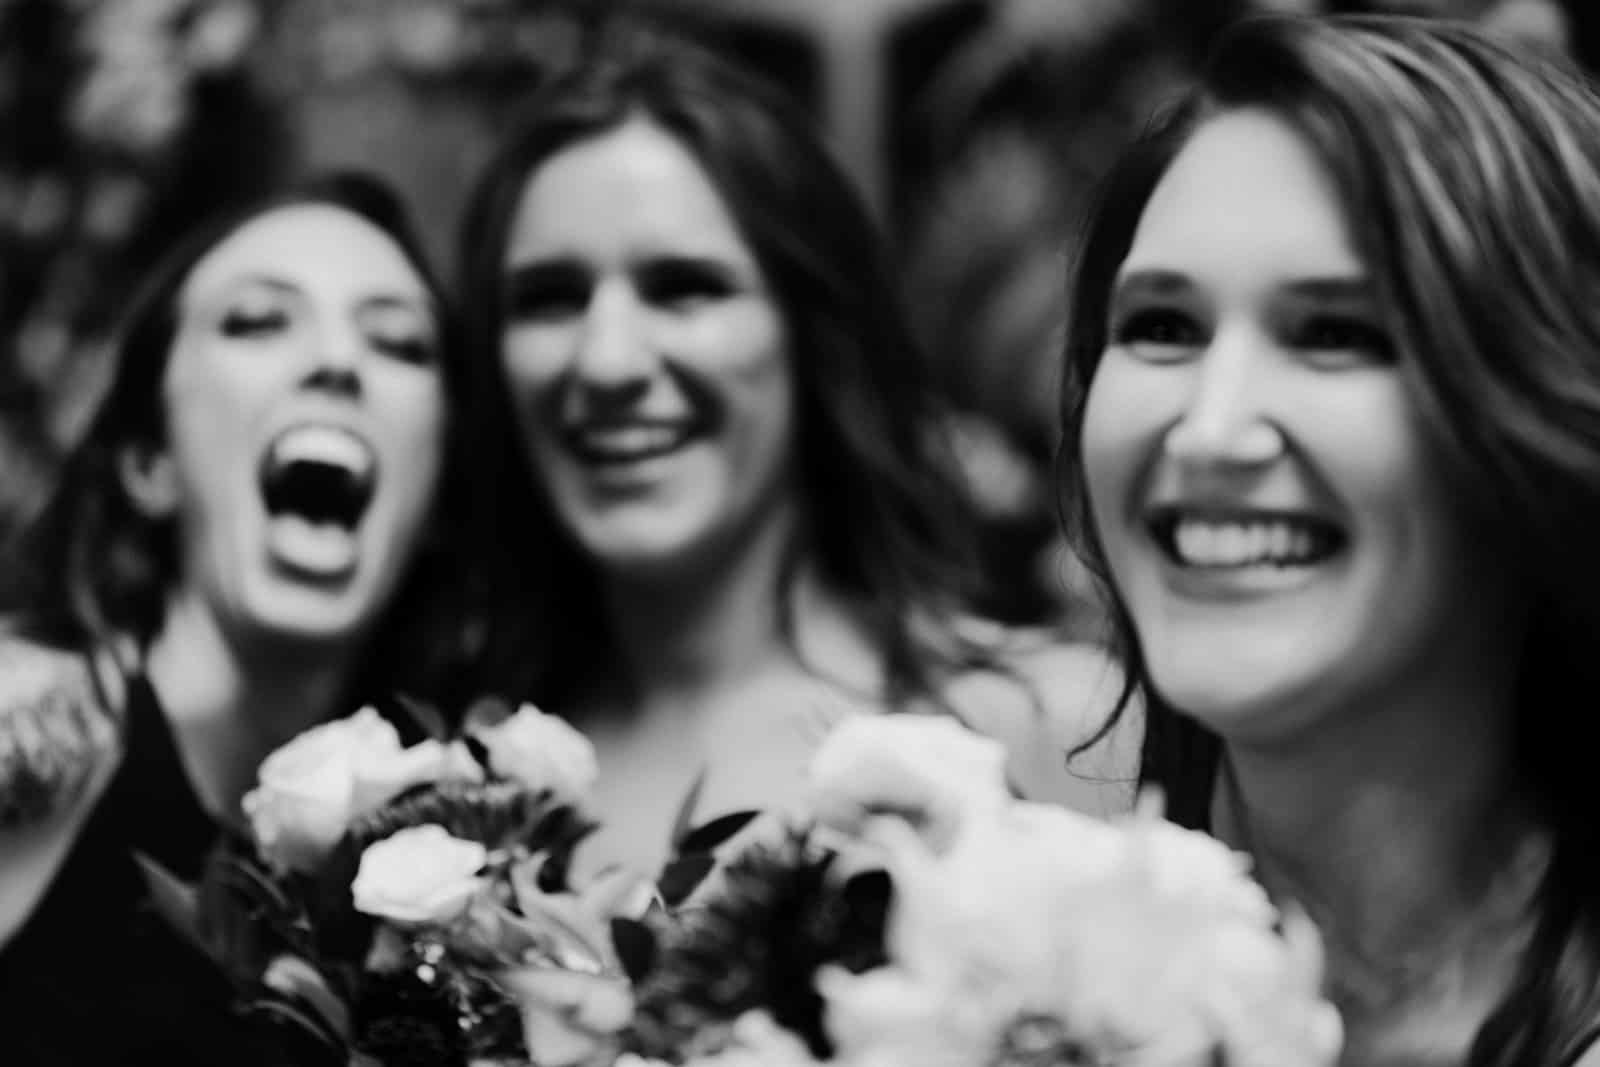 3 women smile and laugh